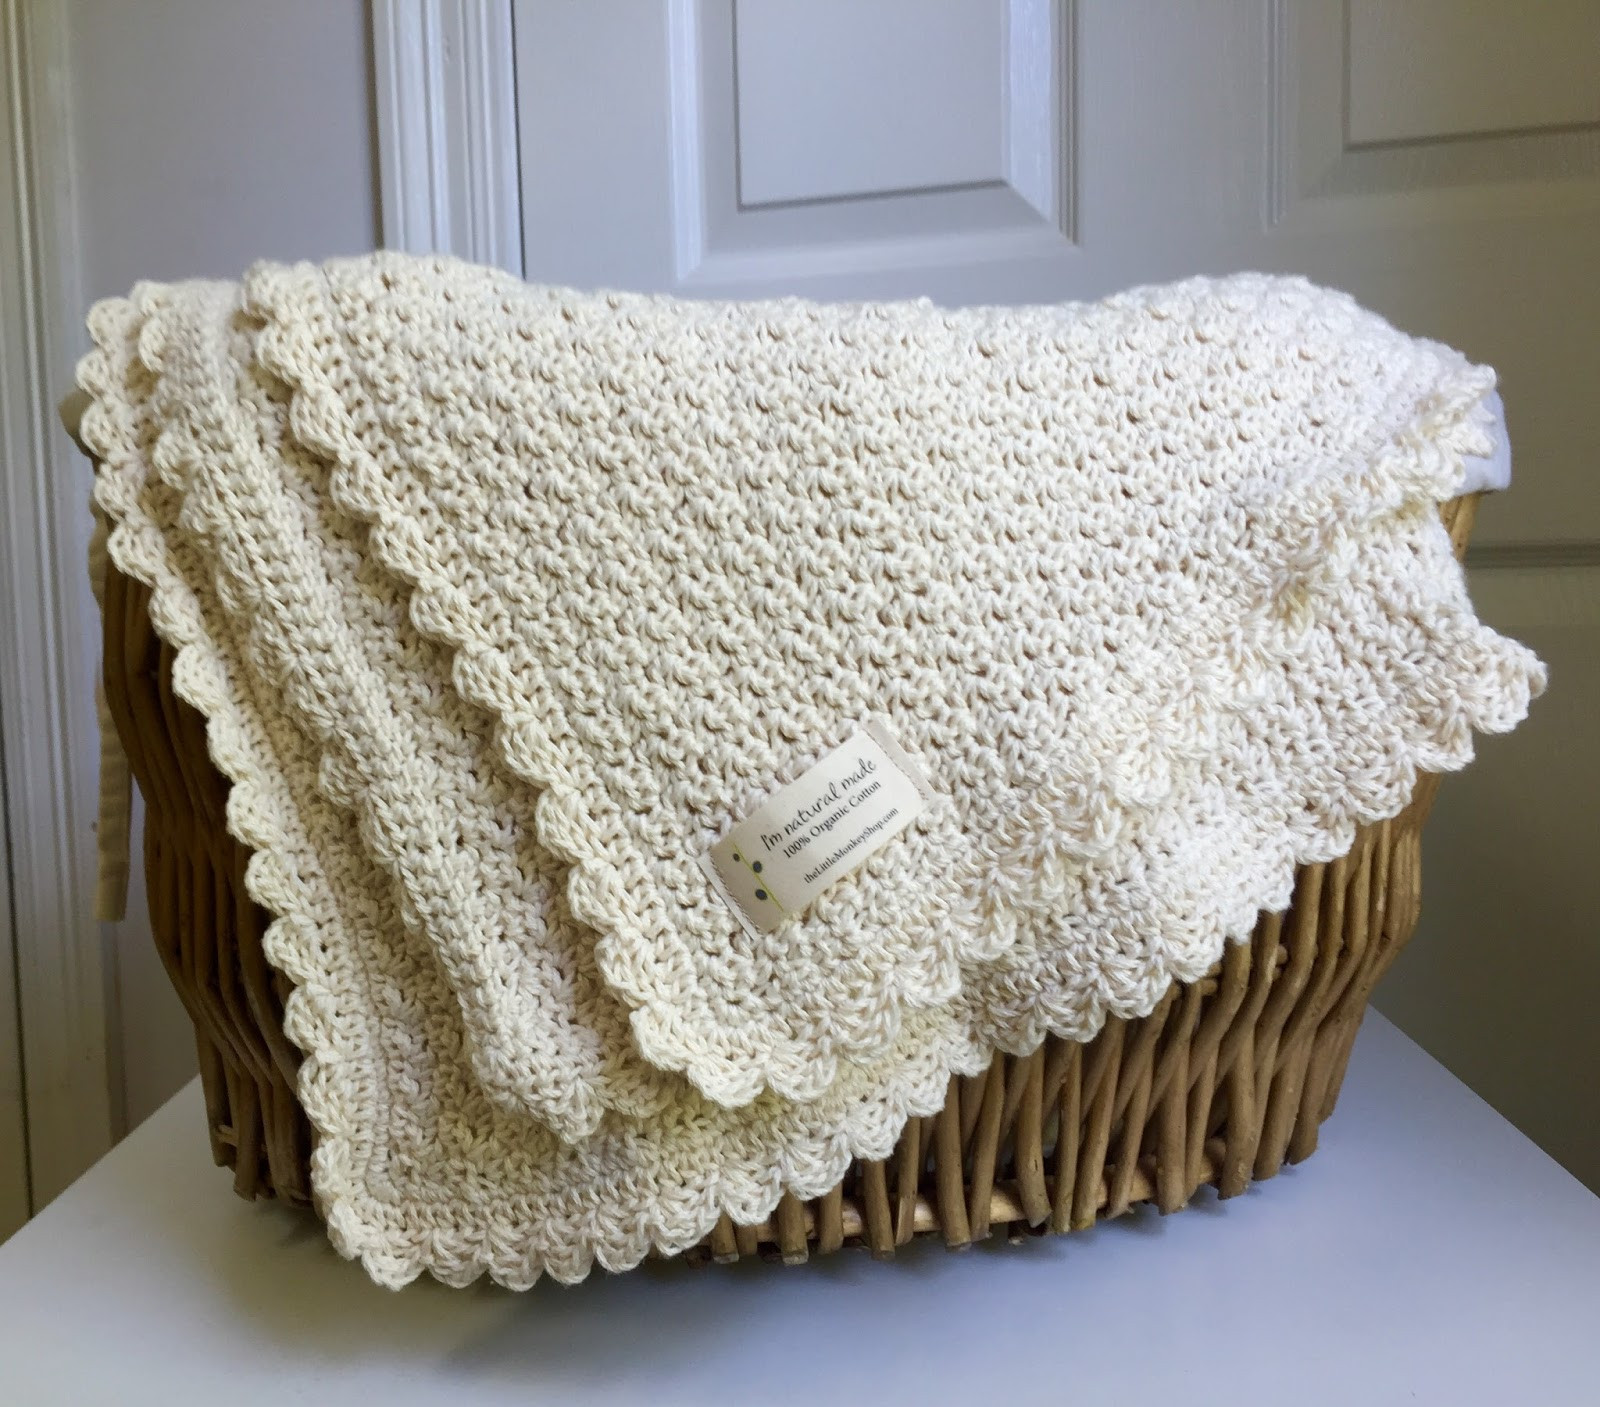 Easy Crochet Throw Patterns Best Of Pure and Simple Baby Blanket A Simply Beautiful Crochet Of New 47 Pictures Easy Crochet Throw Patterns